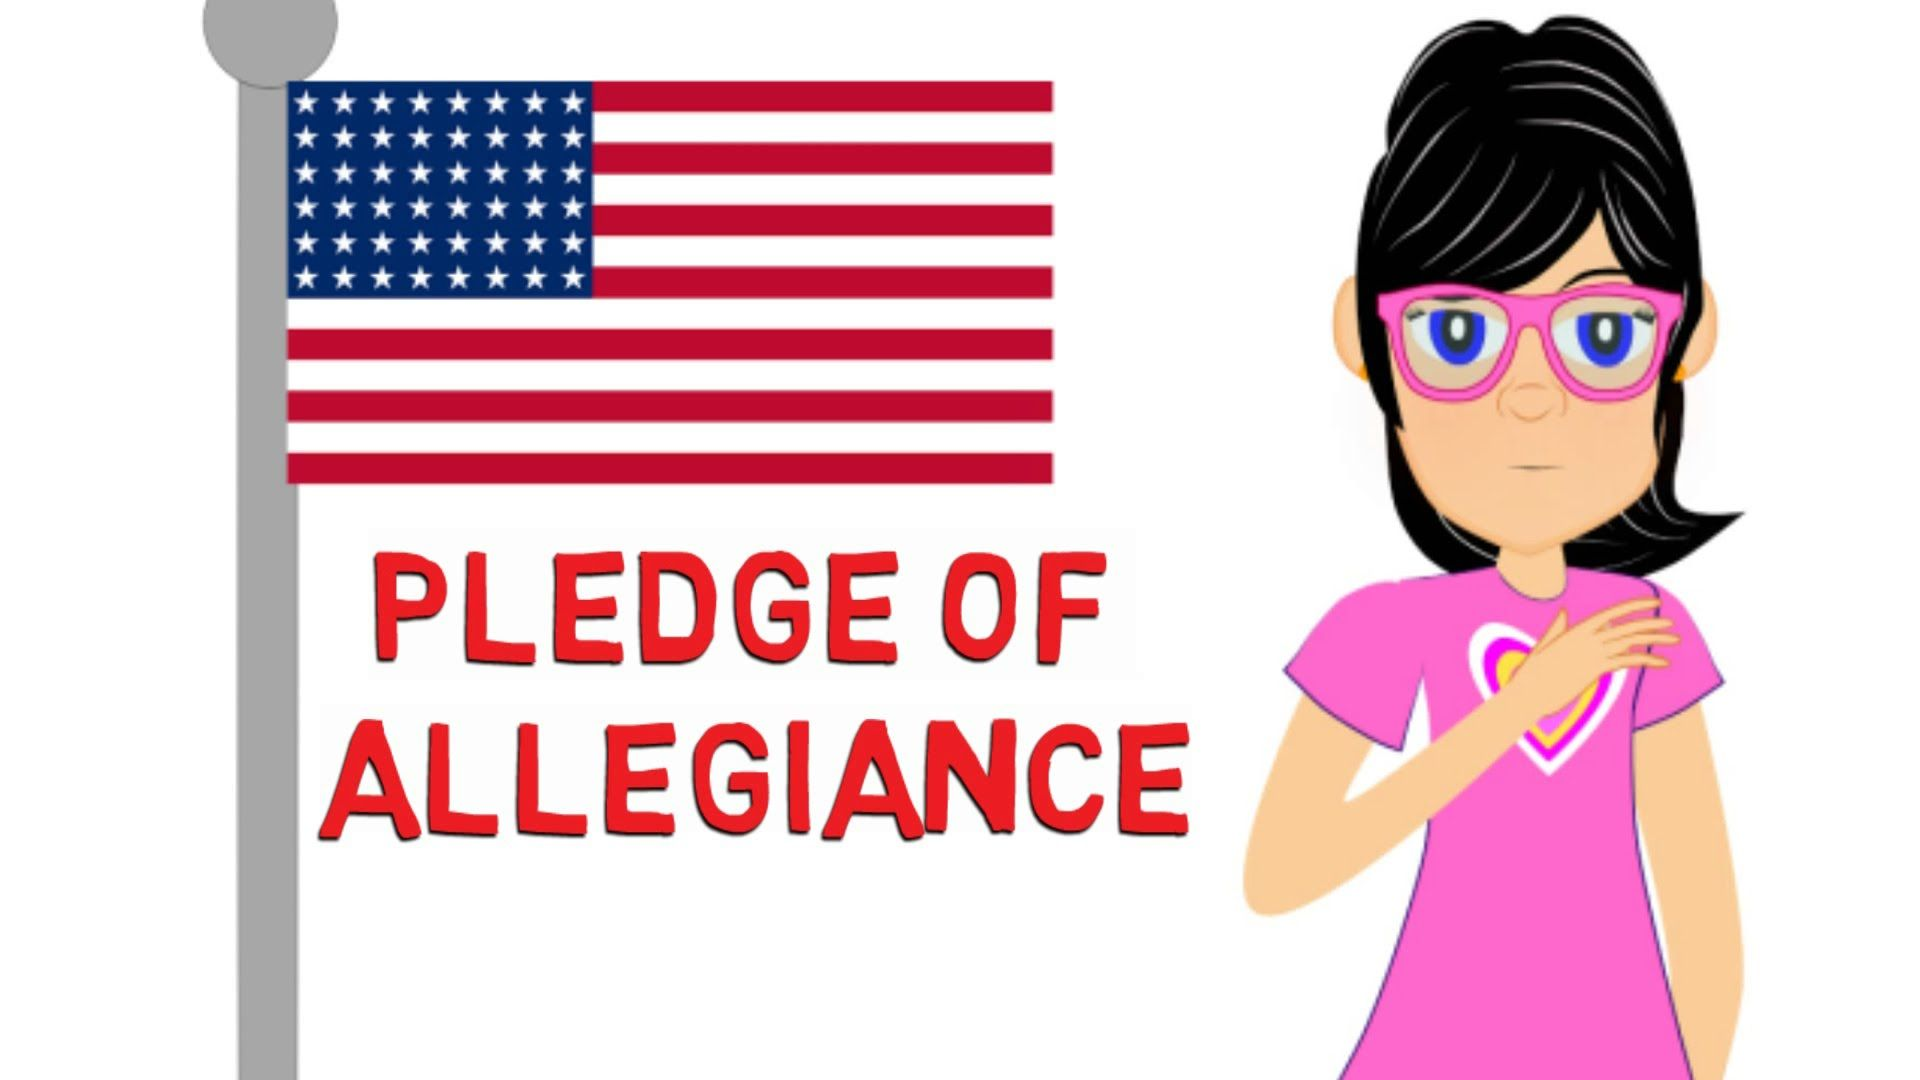 Pledge Of Allegiance Watch A Cartoon For Kids On The